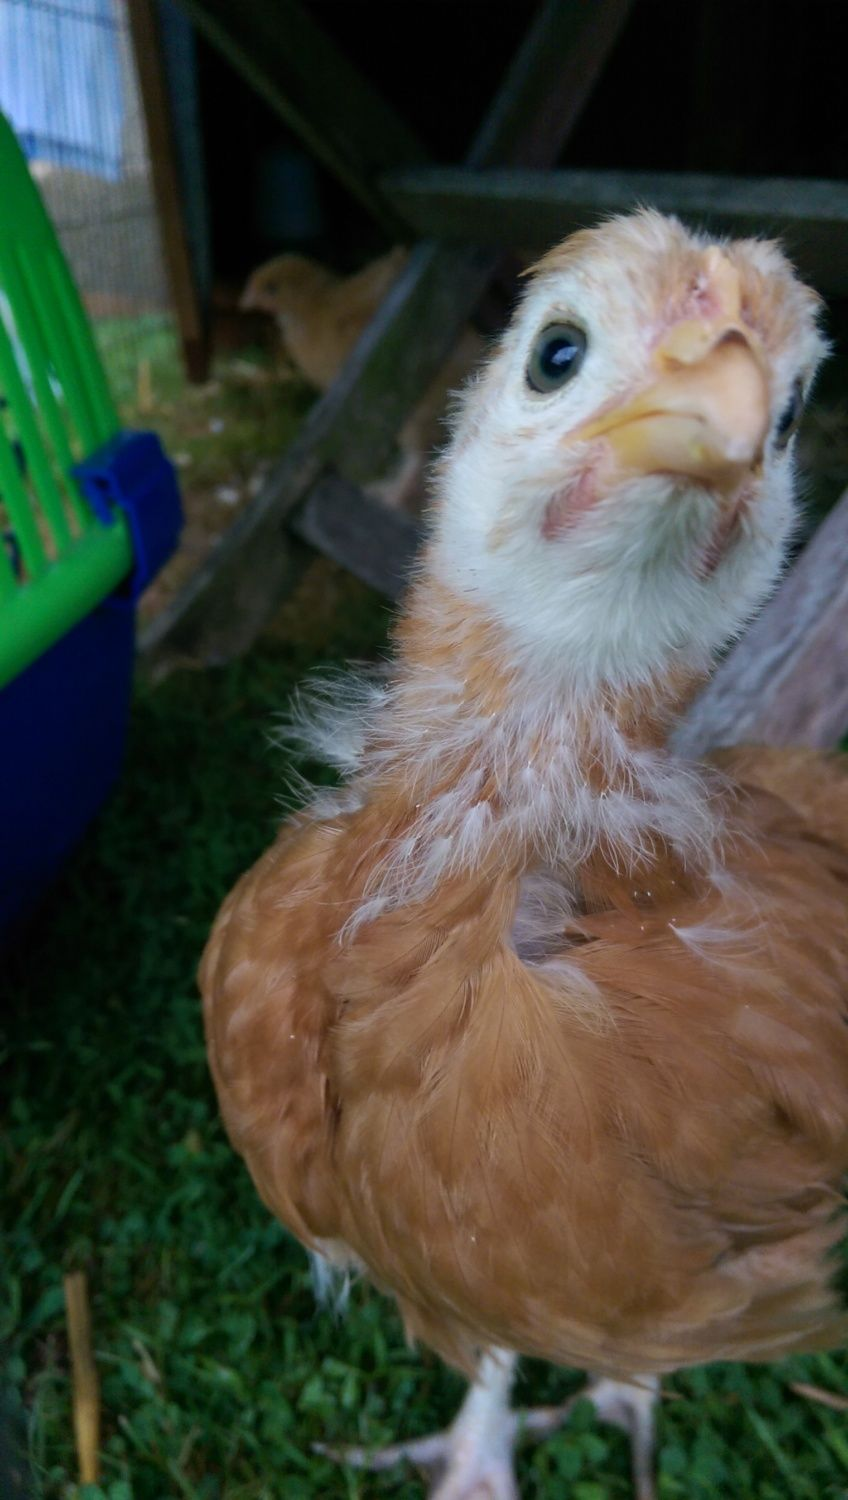 When can I move my chicks outside? | BackYard Chickens ...